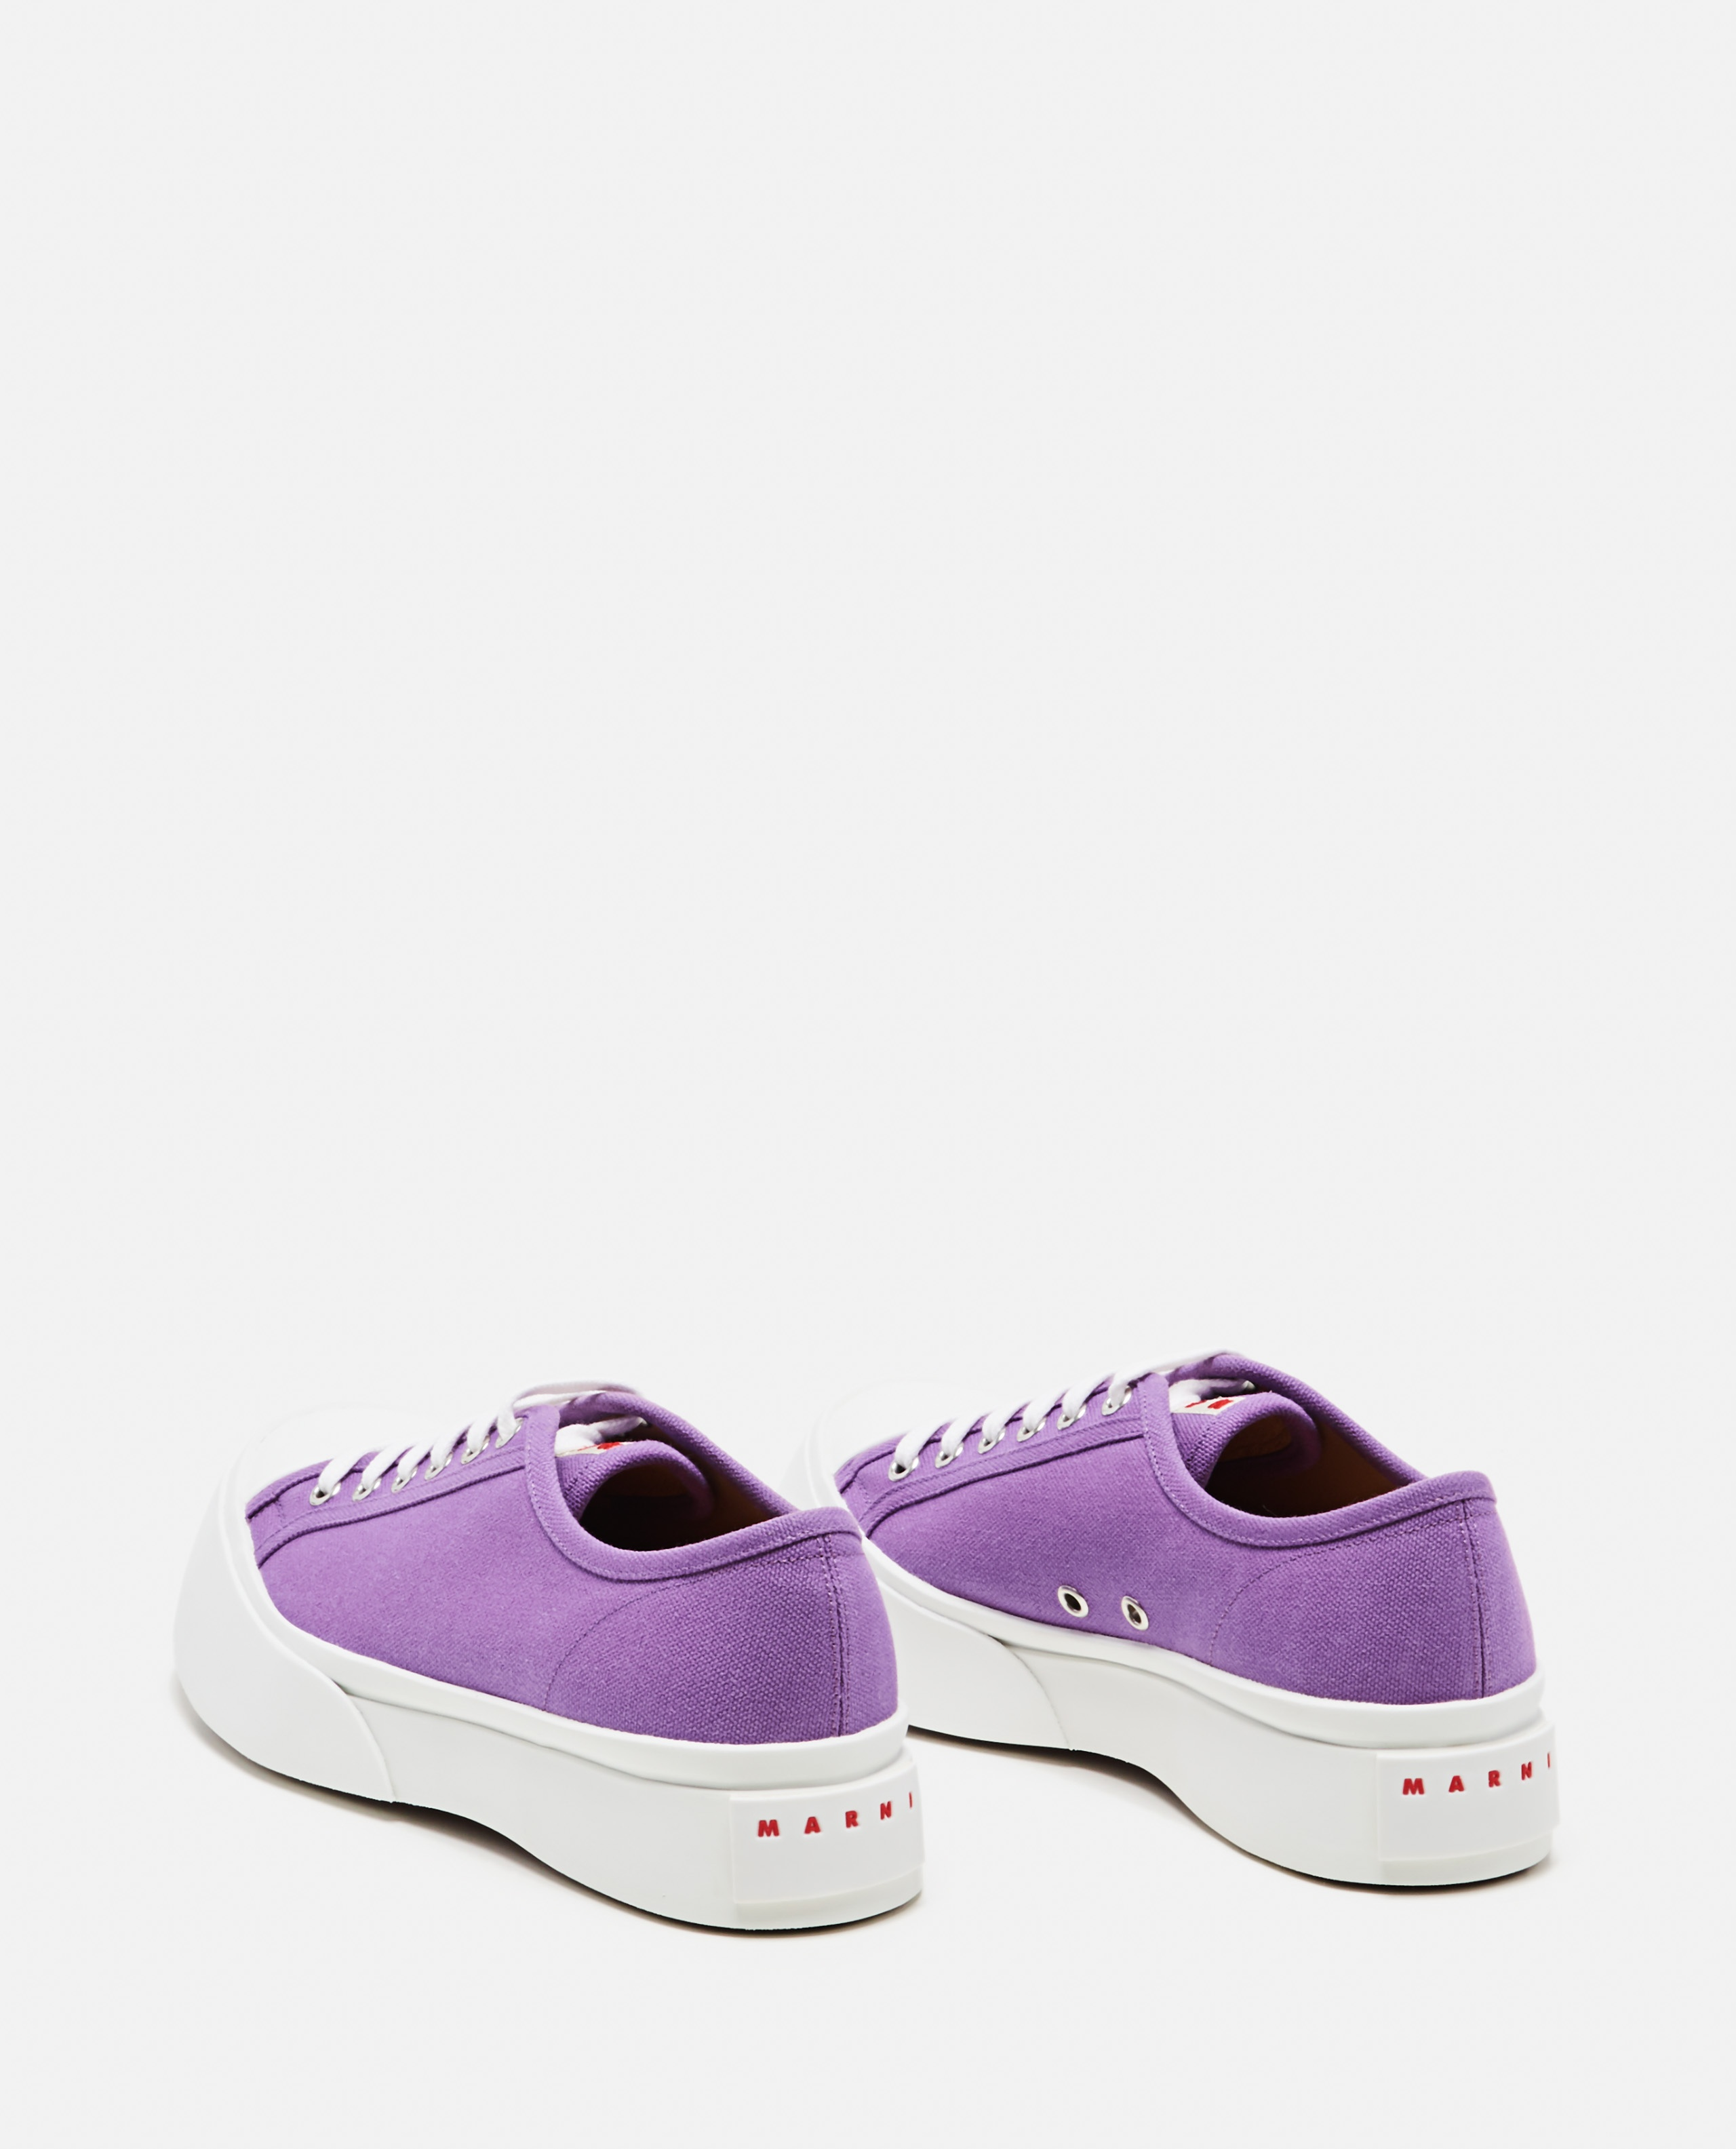 Pablo low-top sneakers Donna Marni 000307250045024 3